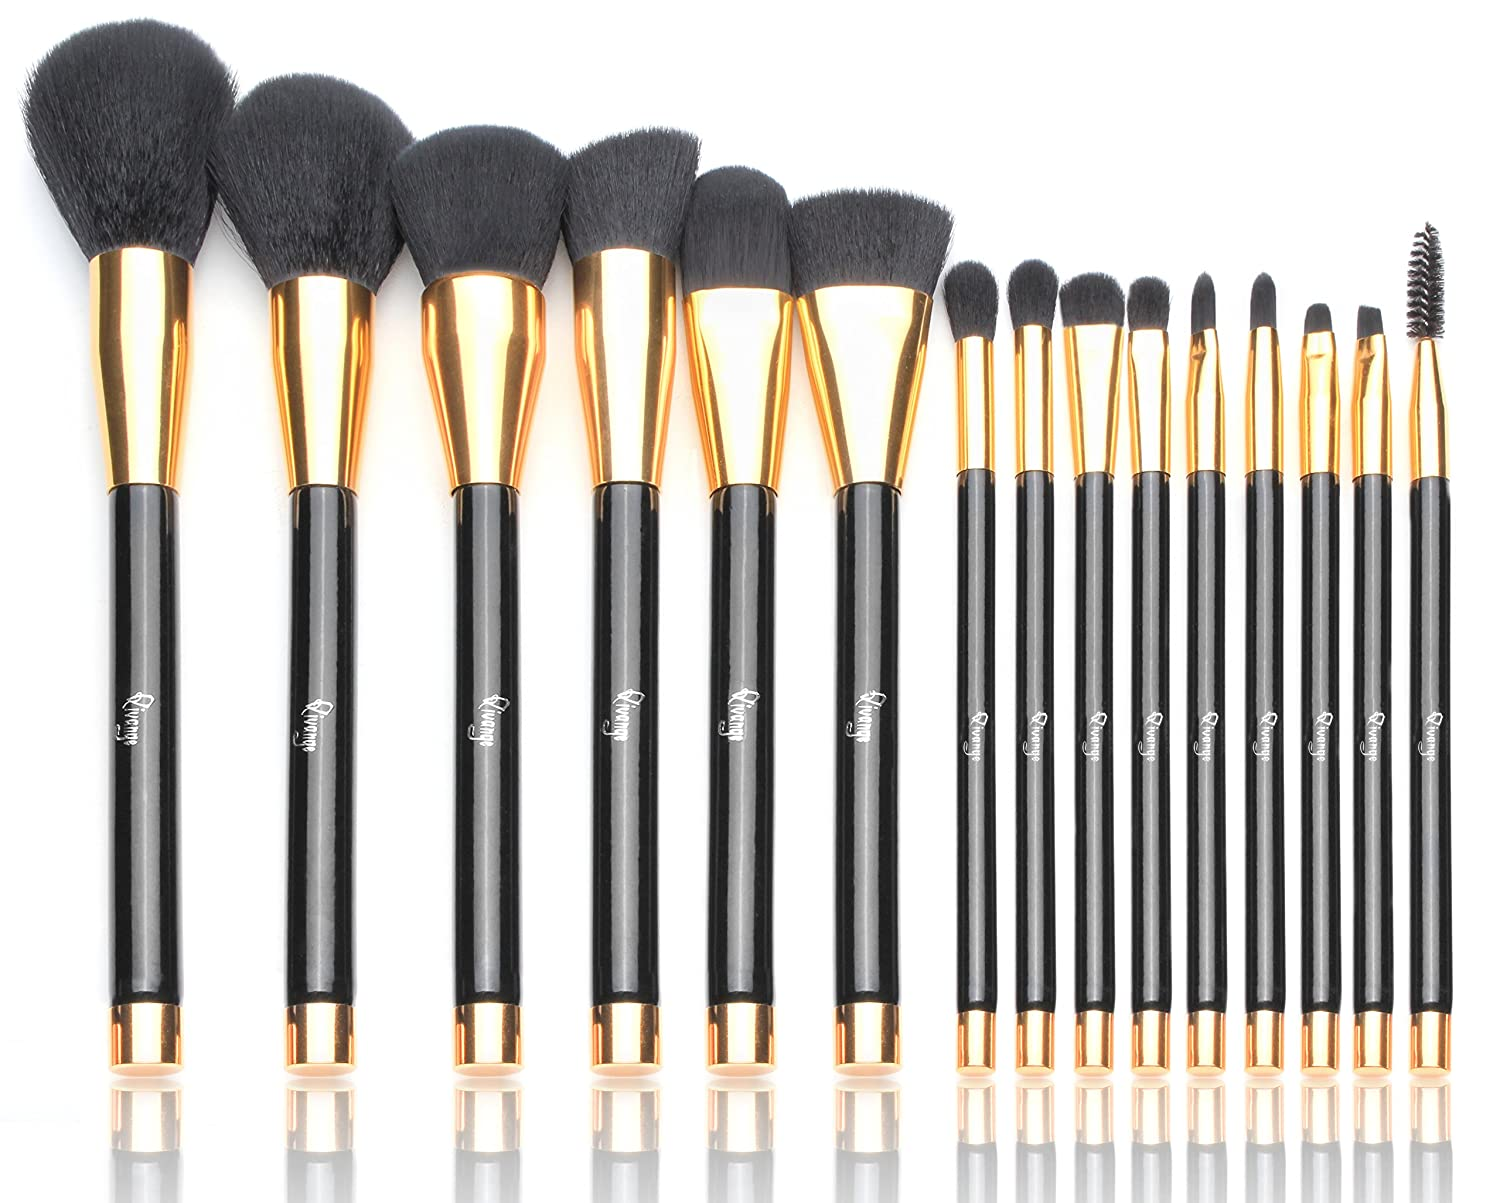 Qivange Makeup Brushes 15 PCS Liquid Foundation Powder Blending Brush Set Black With Gold